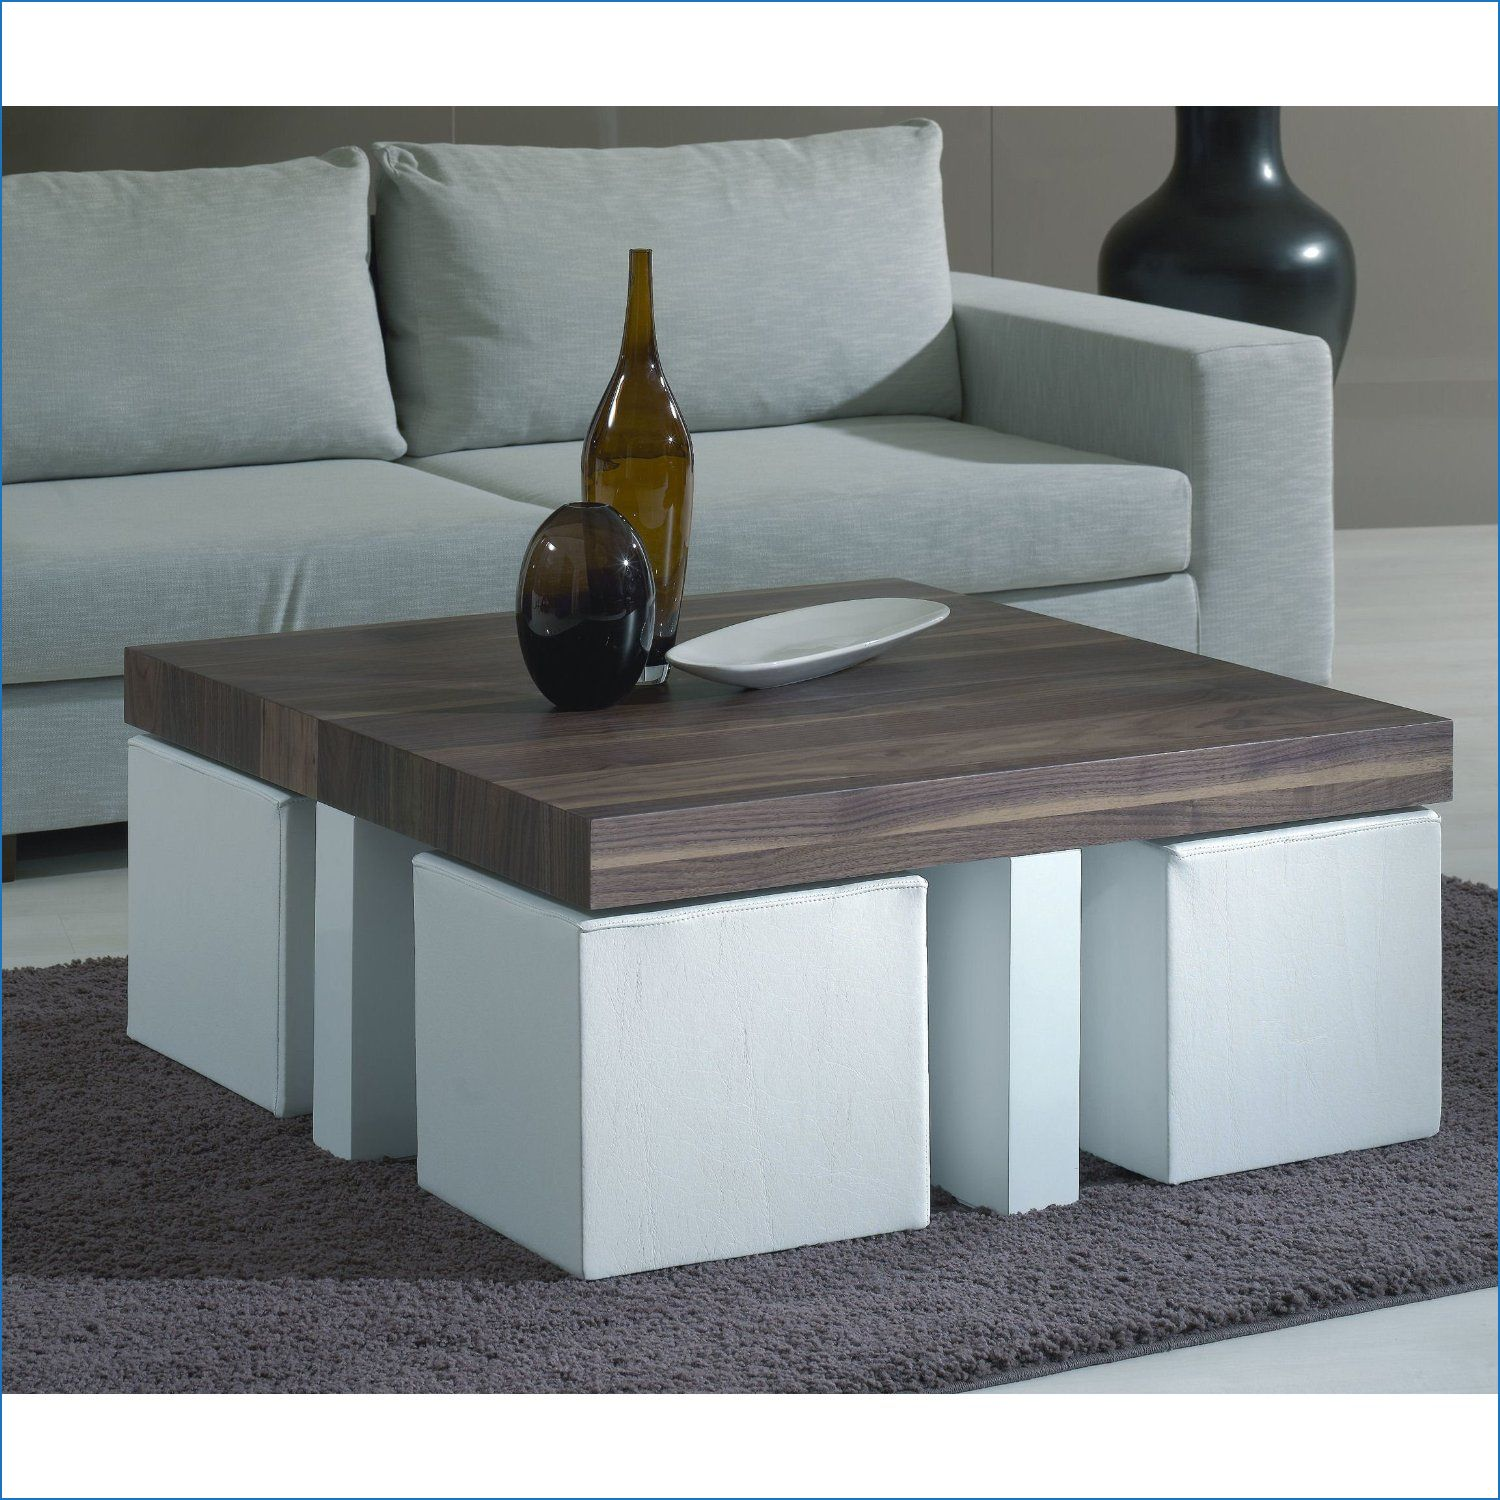 Square Coffee Table With Stools Underneath Home Interior Design Ideas Coffee Table With Seating Coffee Table Square Coffee Table With Stools